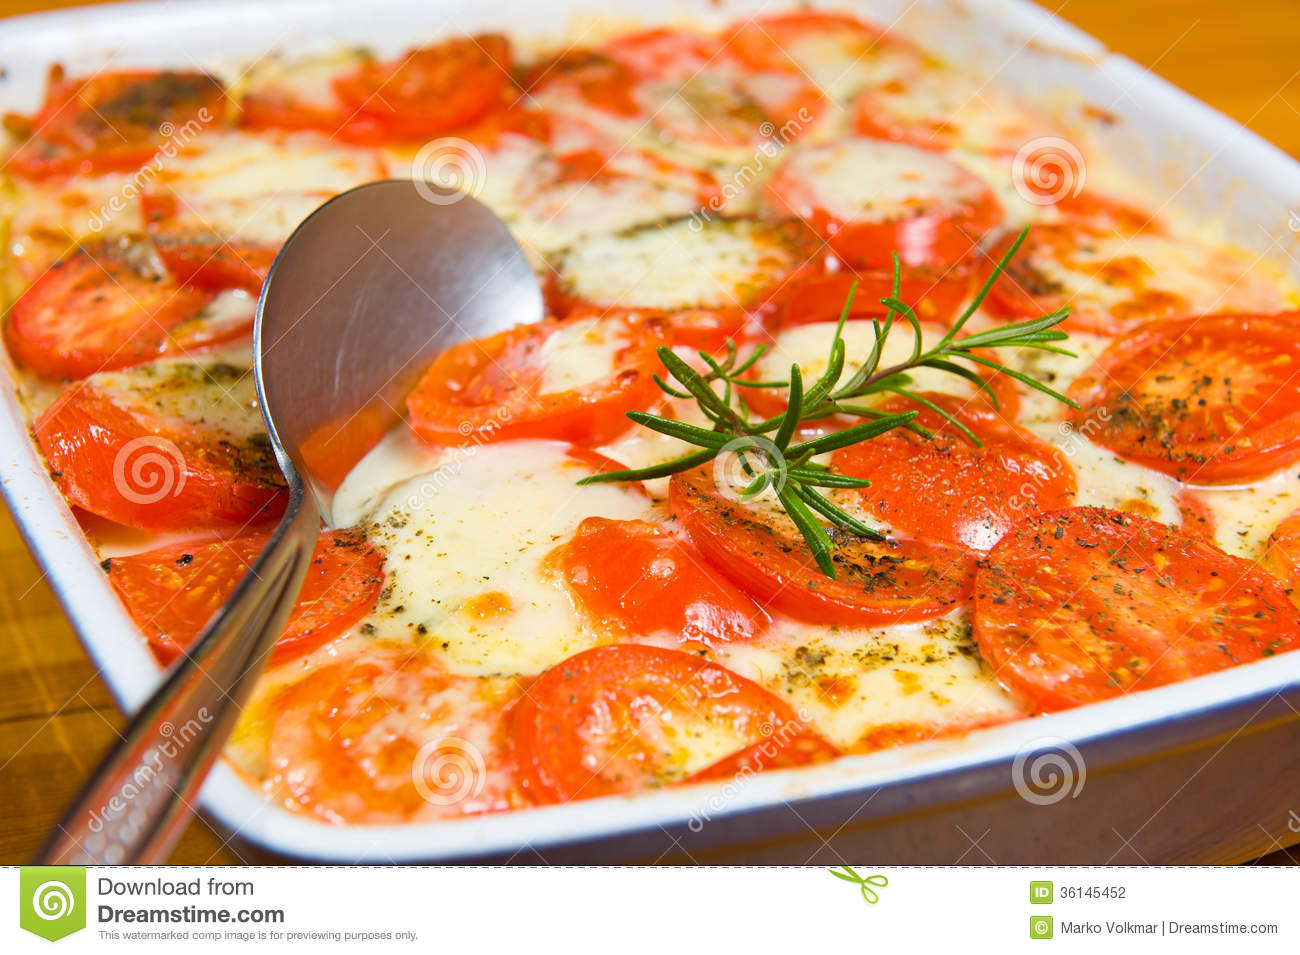 Casserole with tomato and cheese